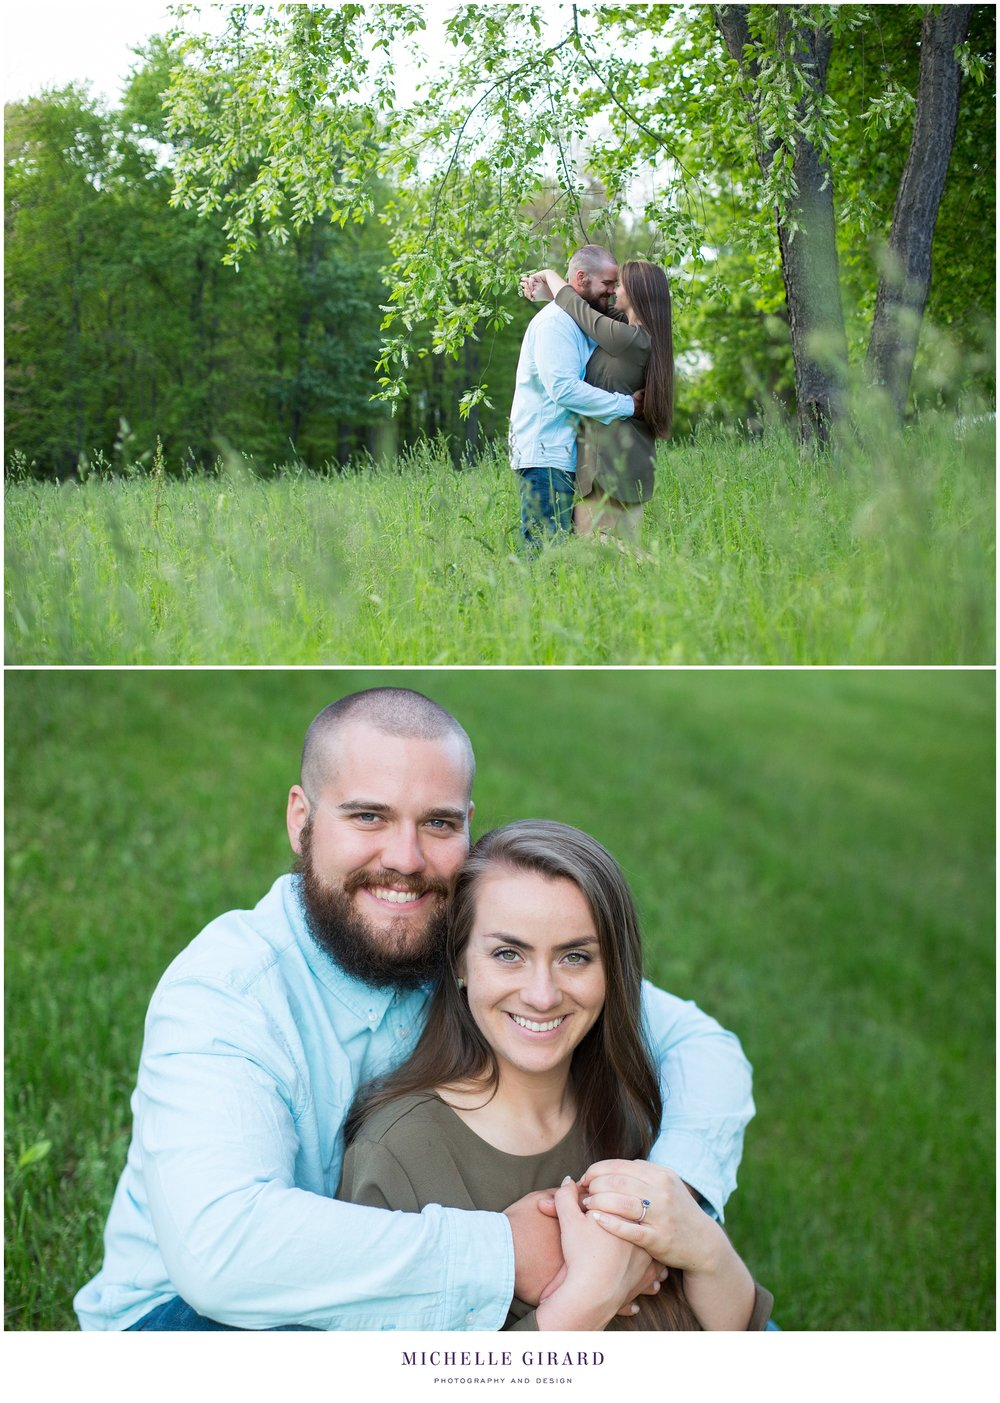 BackyardCountryEngagementSession_MichelleGirardPhotography04.jpg